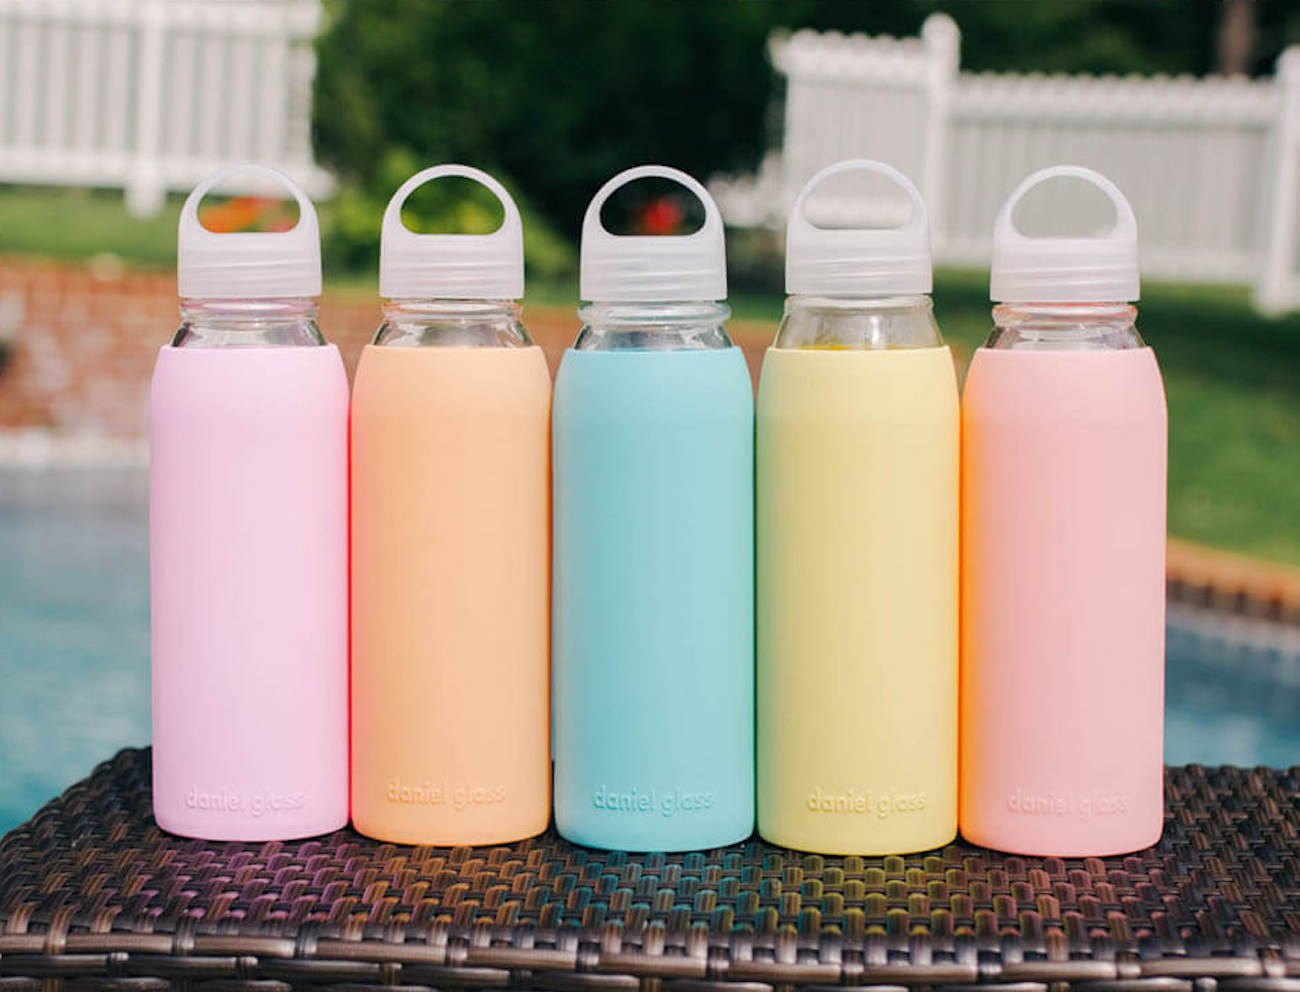 Daniel Glass Reusable Bottle